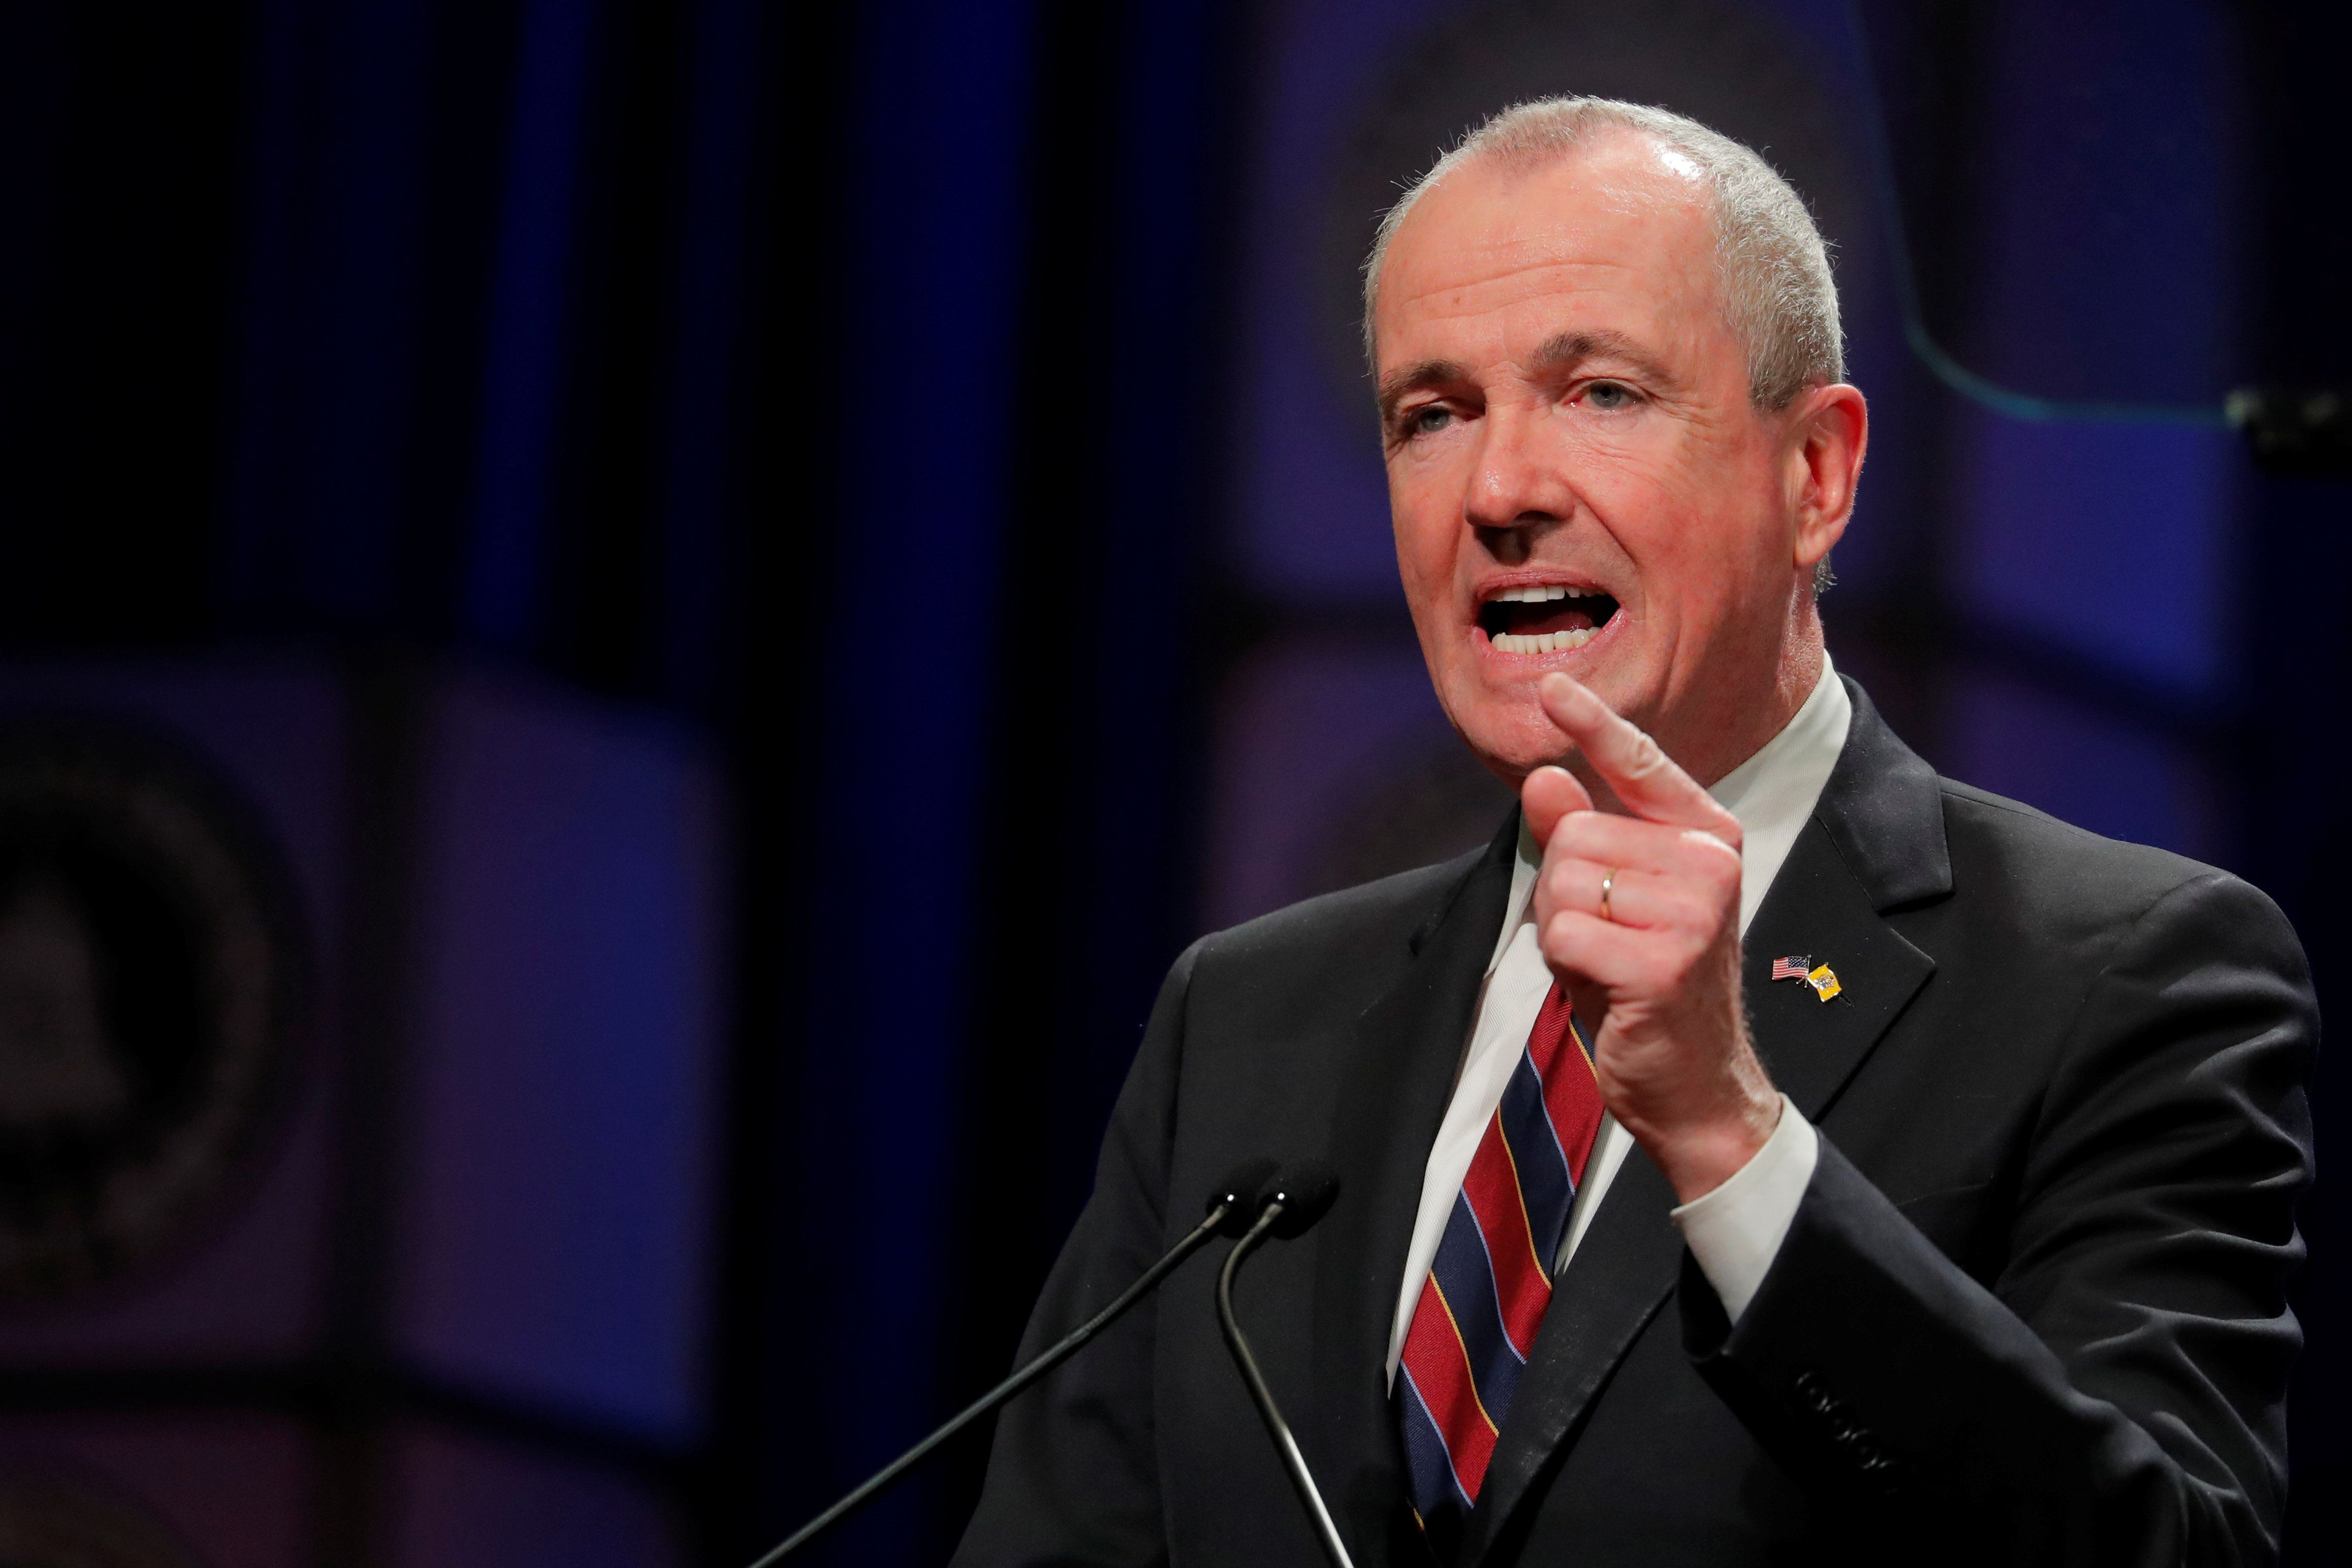 Newly sworn in New Jersey Governor, Phil Murphy, speaks after taking the oath of office in Trenton, New Jersey, U.S., January 16, 2018. REUTERS/Lucas Jackson